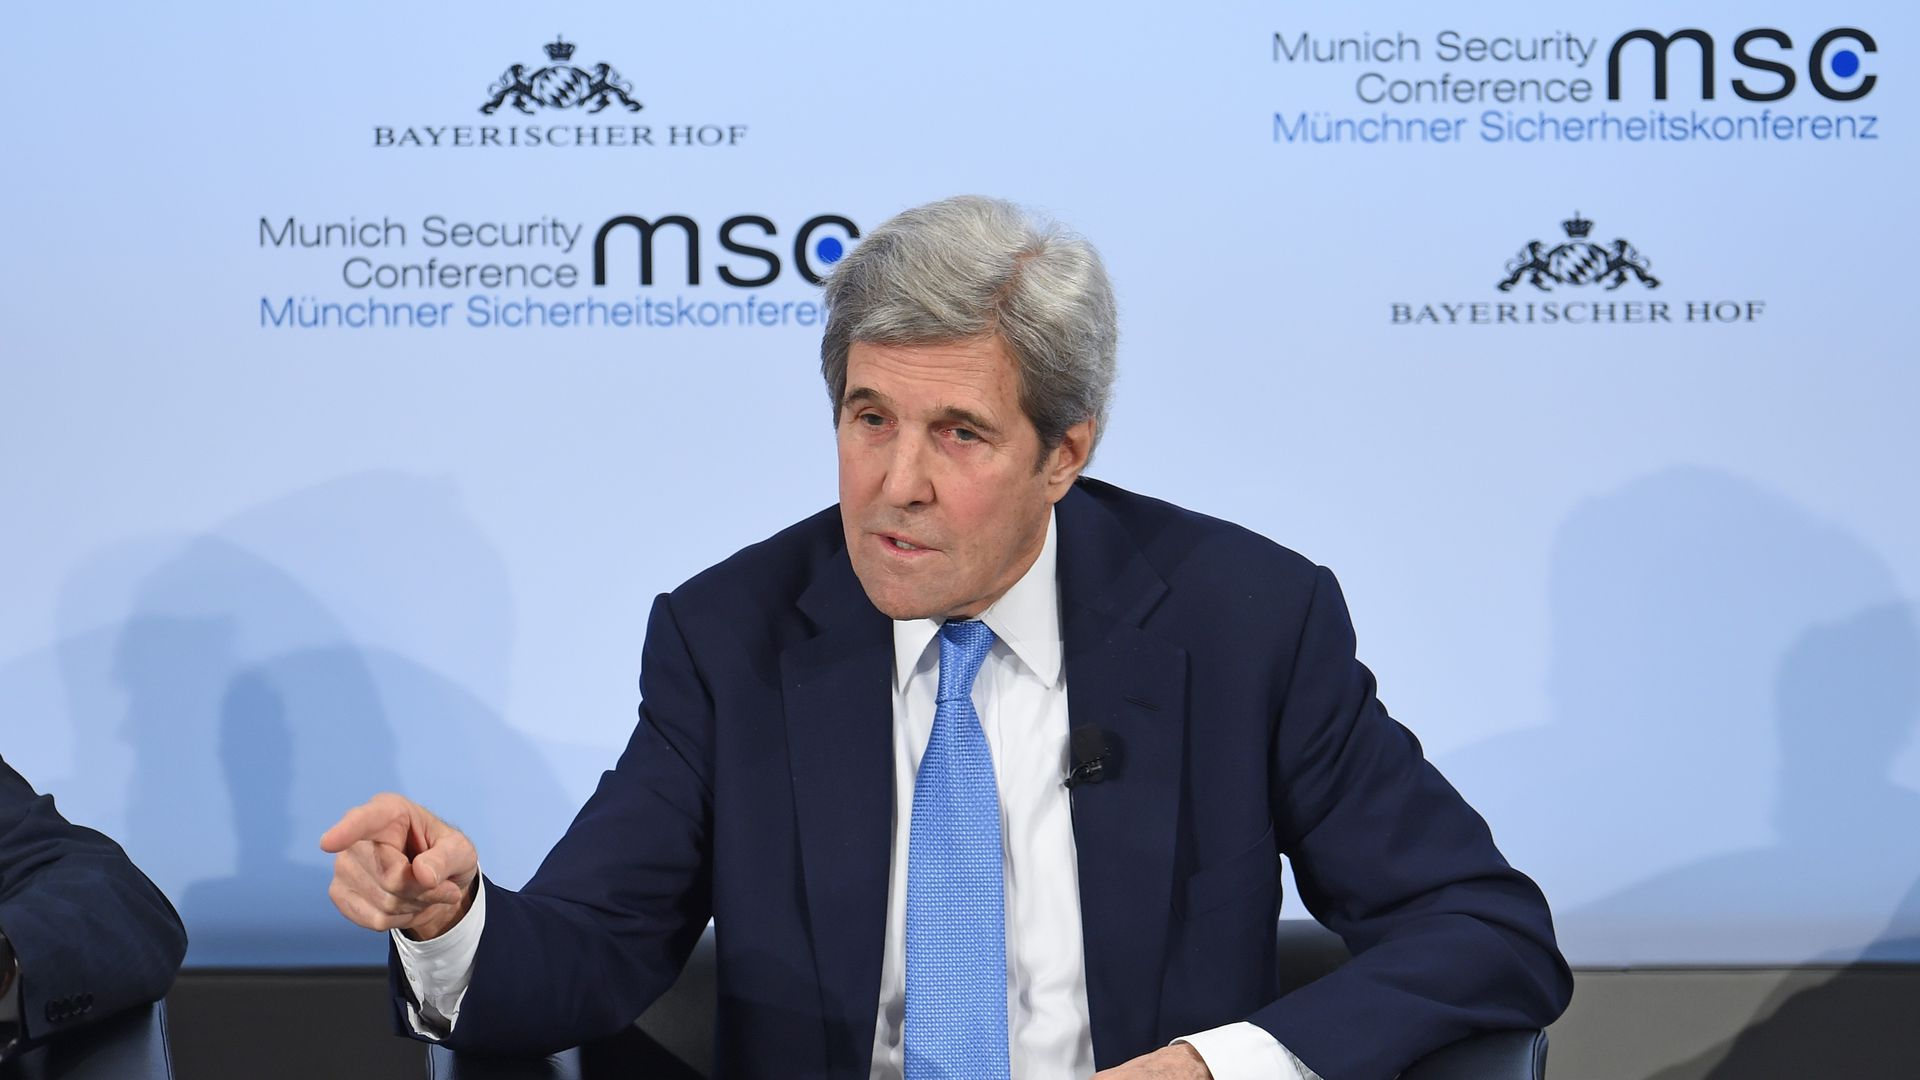 Kerry gestures while speaking, seated, on stage